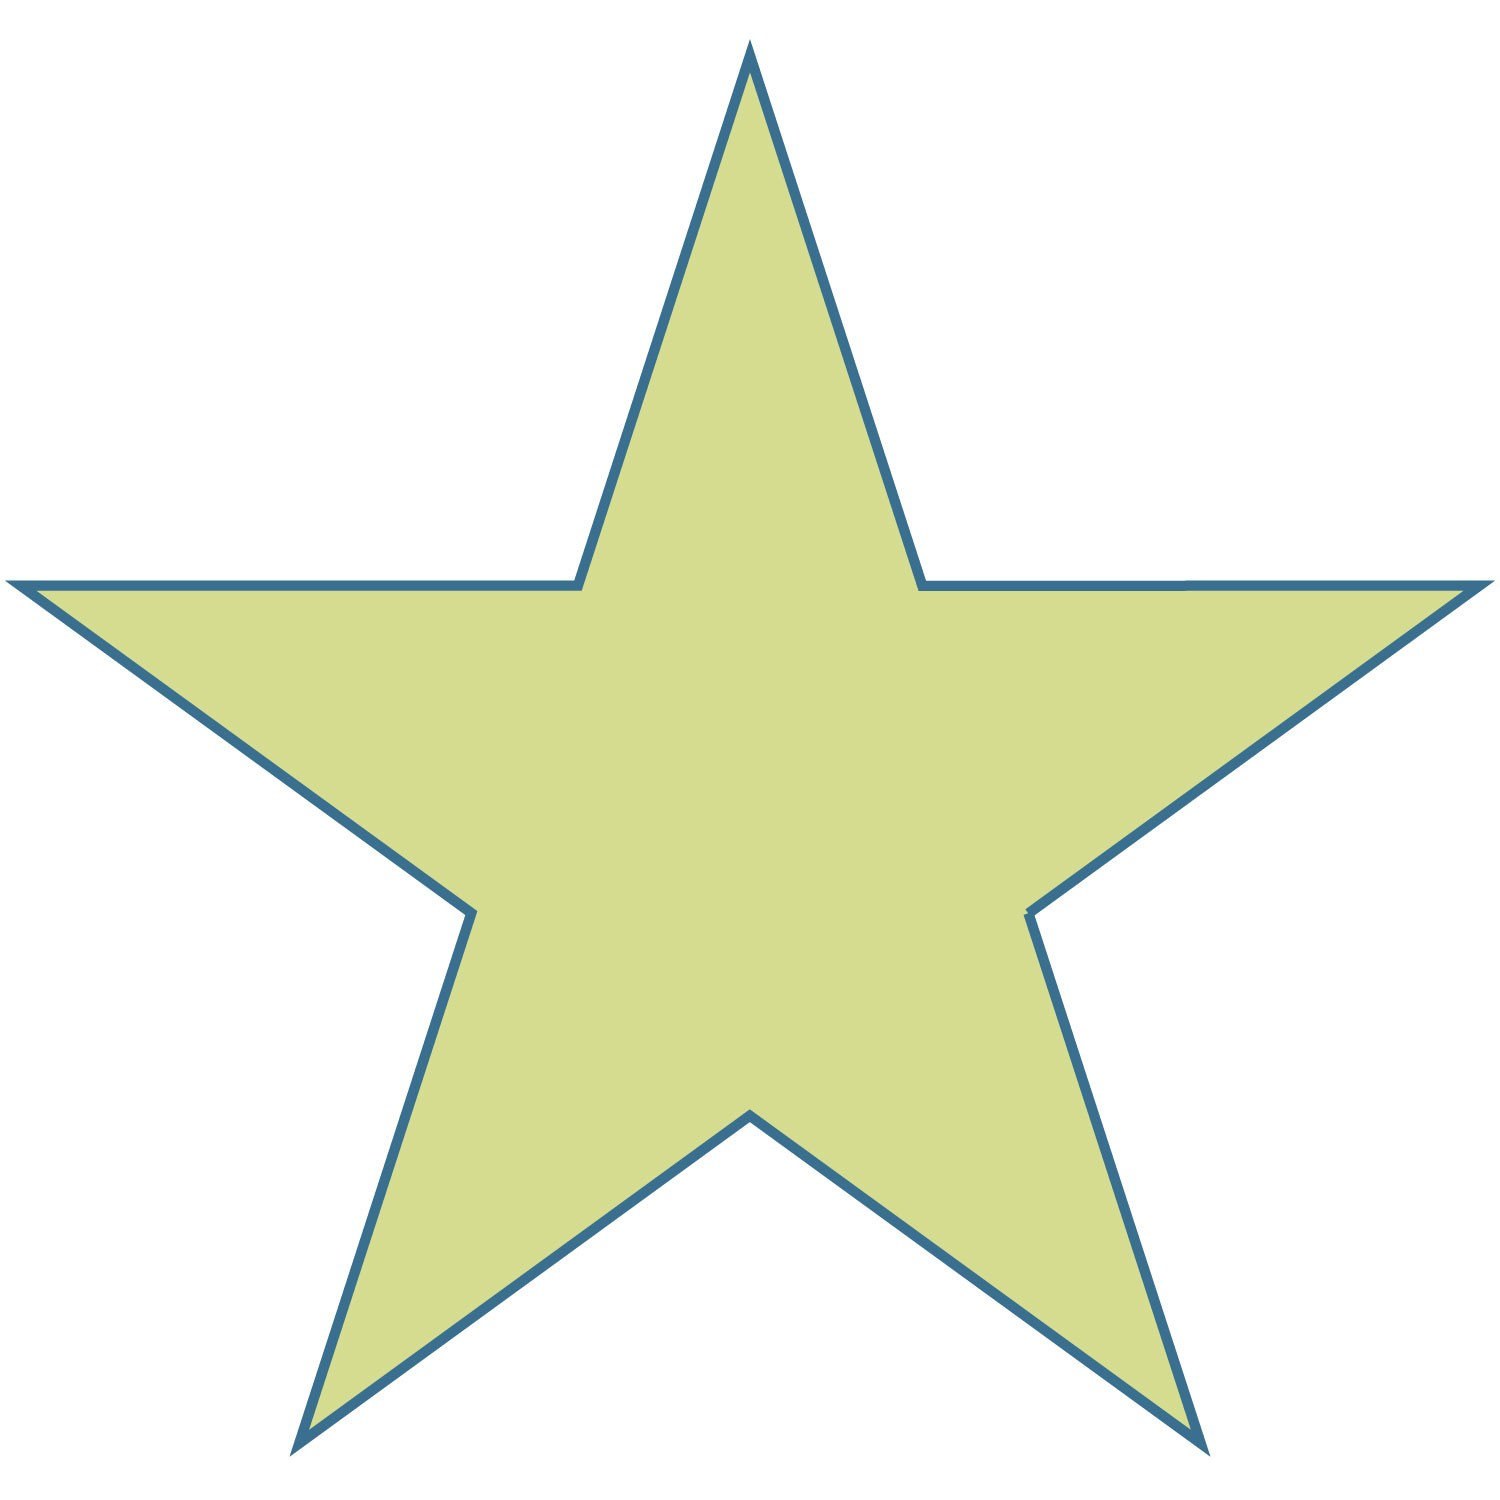 Free Star Shapes, Download Free Clip Art, Free Clip Art on.